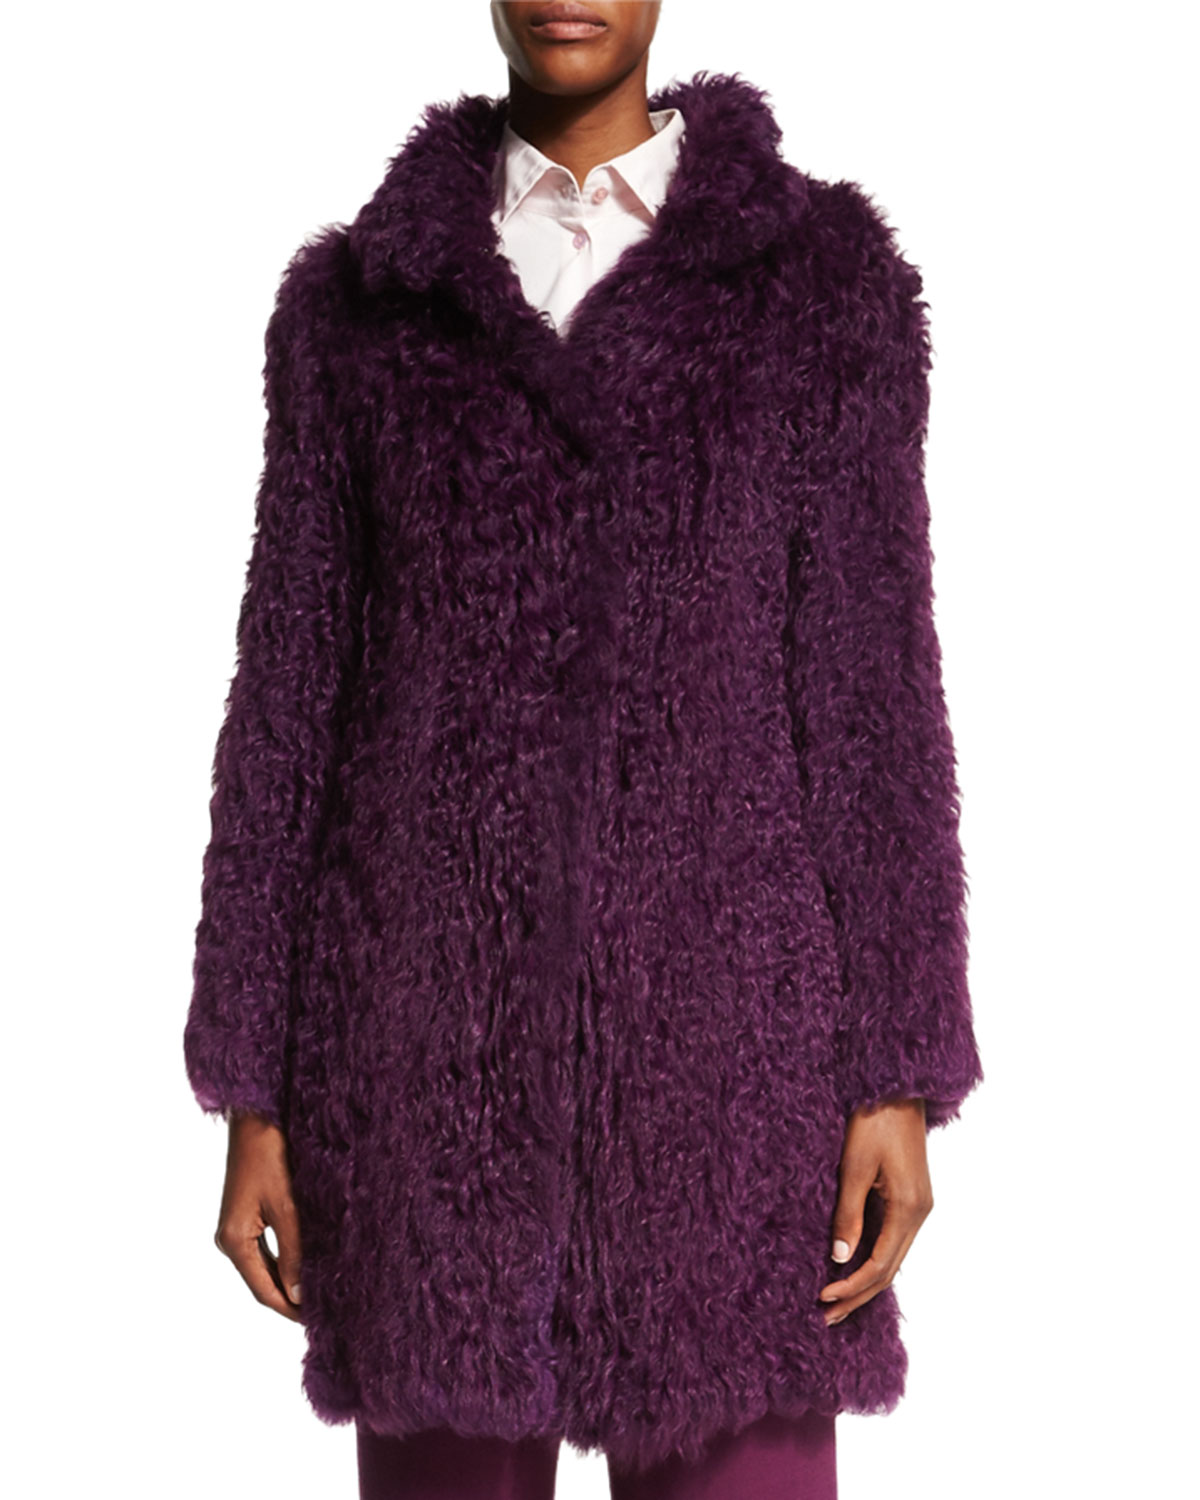 Curly Lamb Fur Long-Sleeve Coat, Amethyst (Purple), Size: 10/40 - Escada